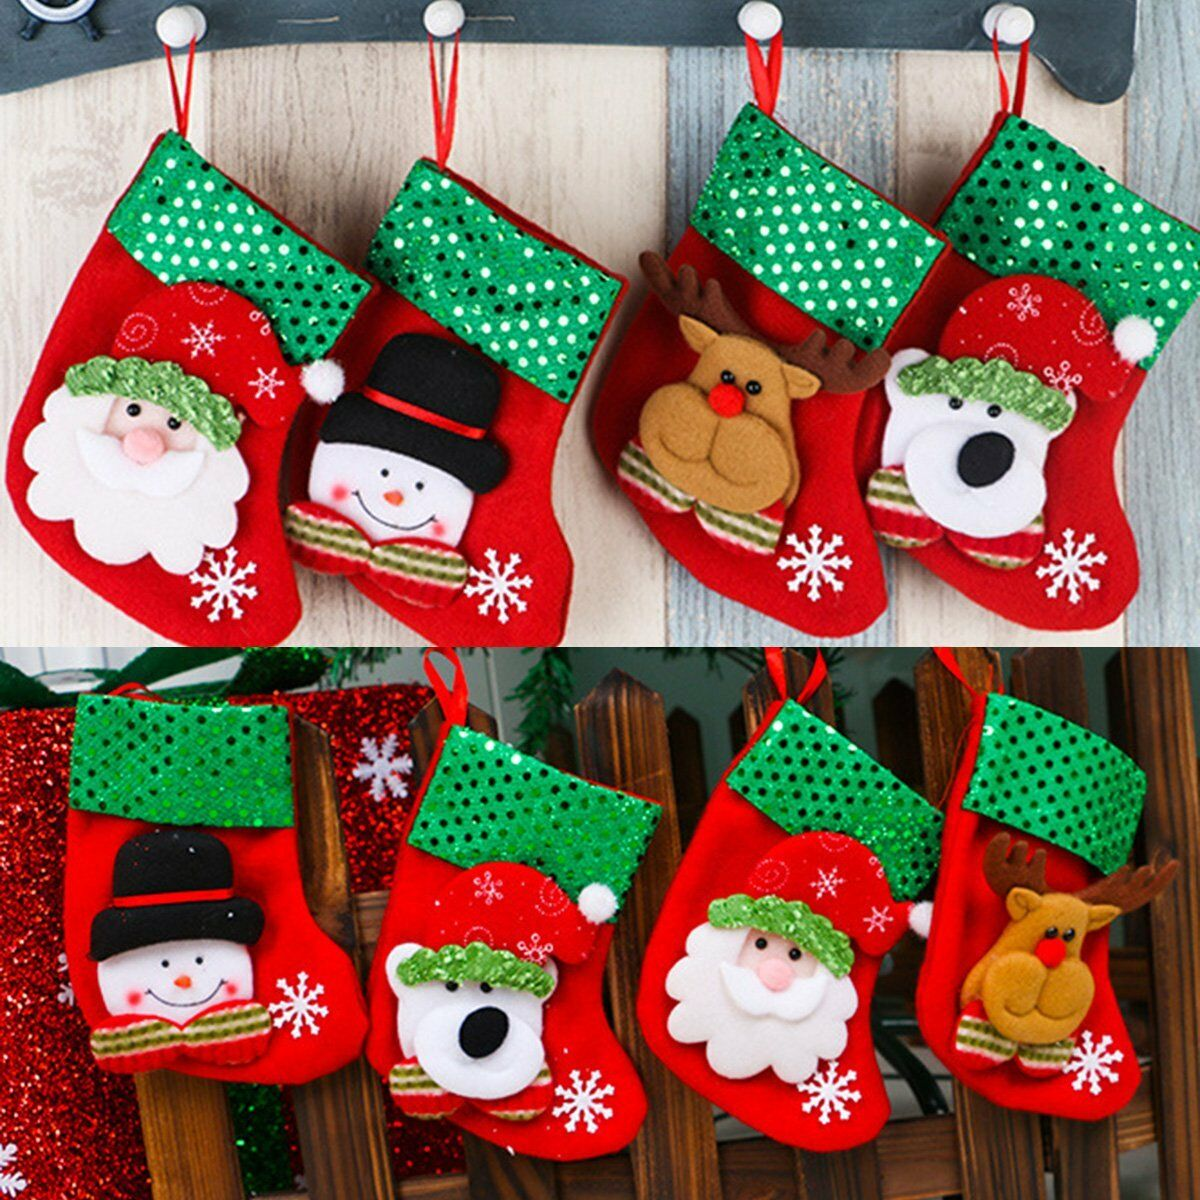 Newest Christmas Ornaments Socks Festival Party Cute Tree Hanging Decoration